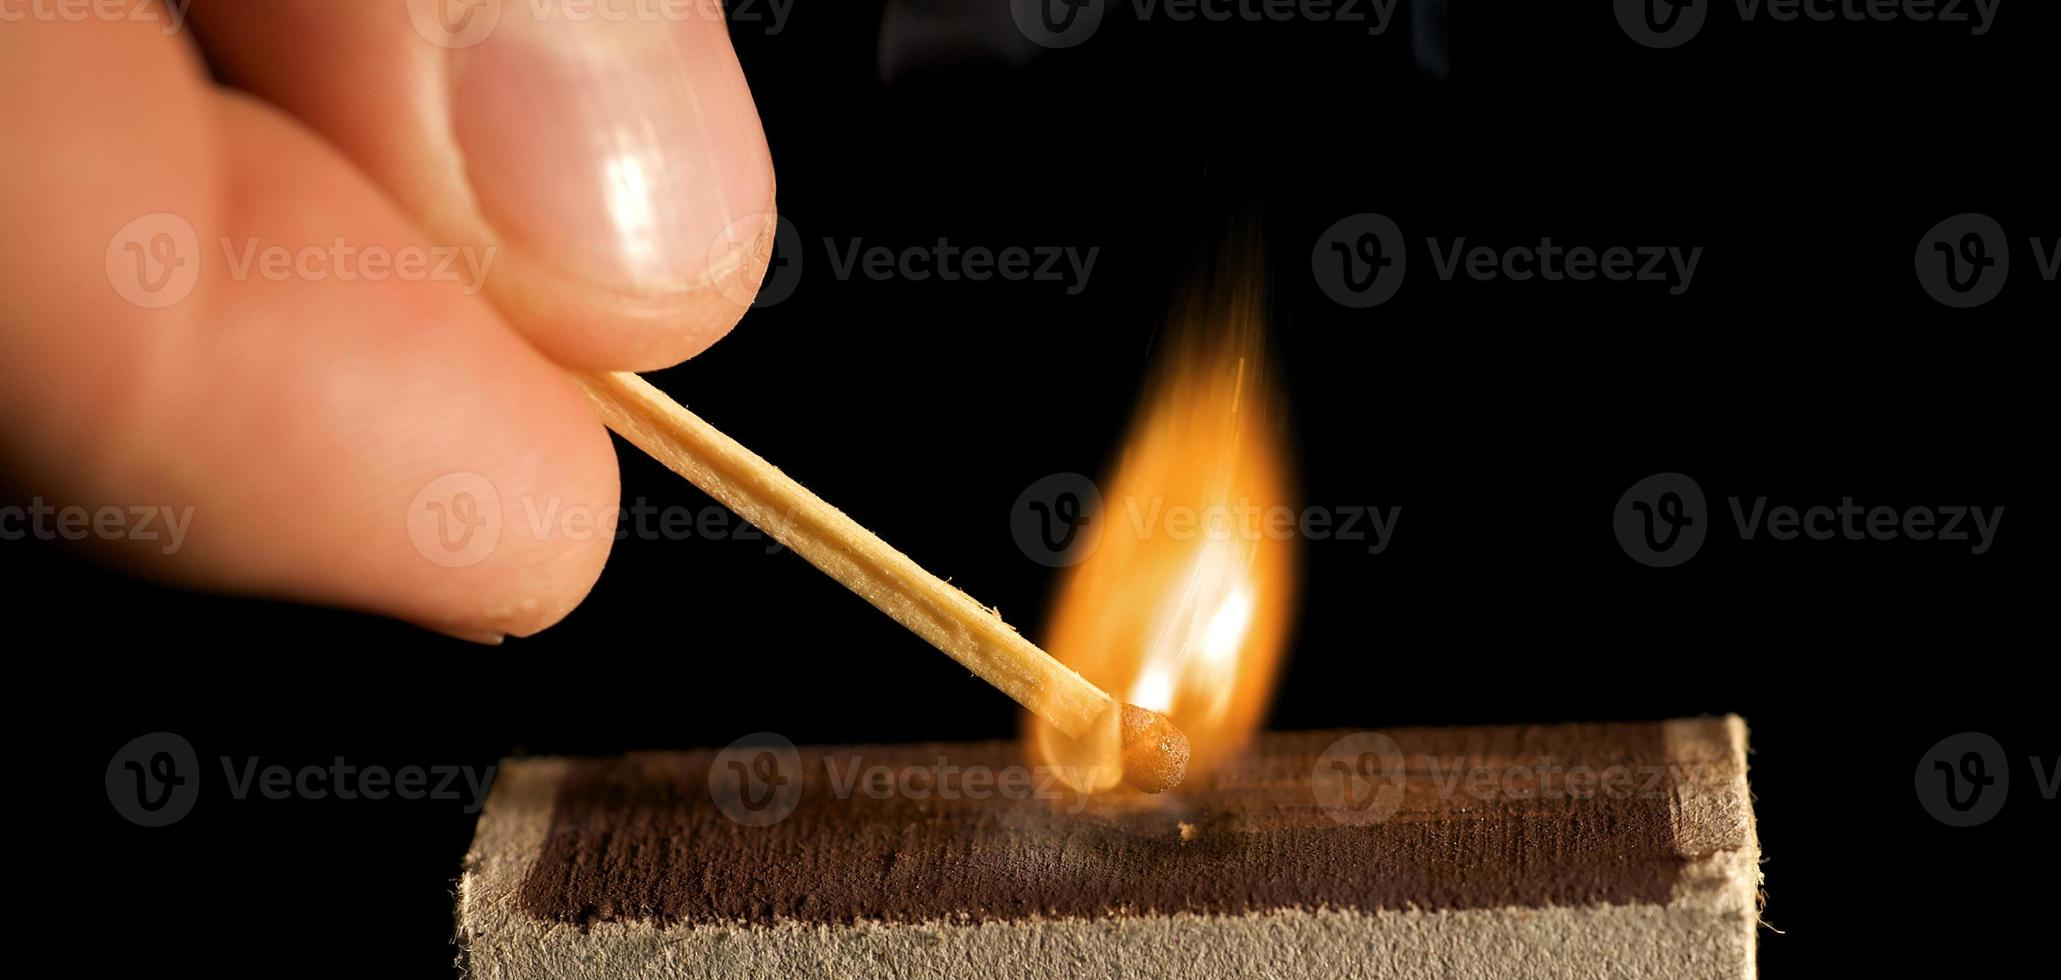 The wooden match photo